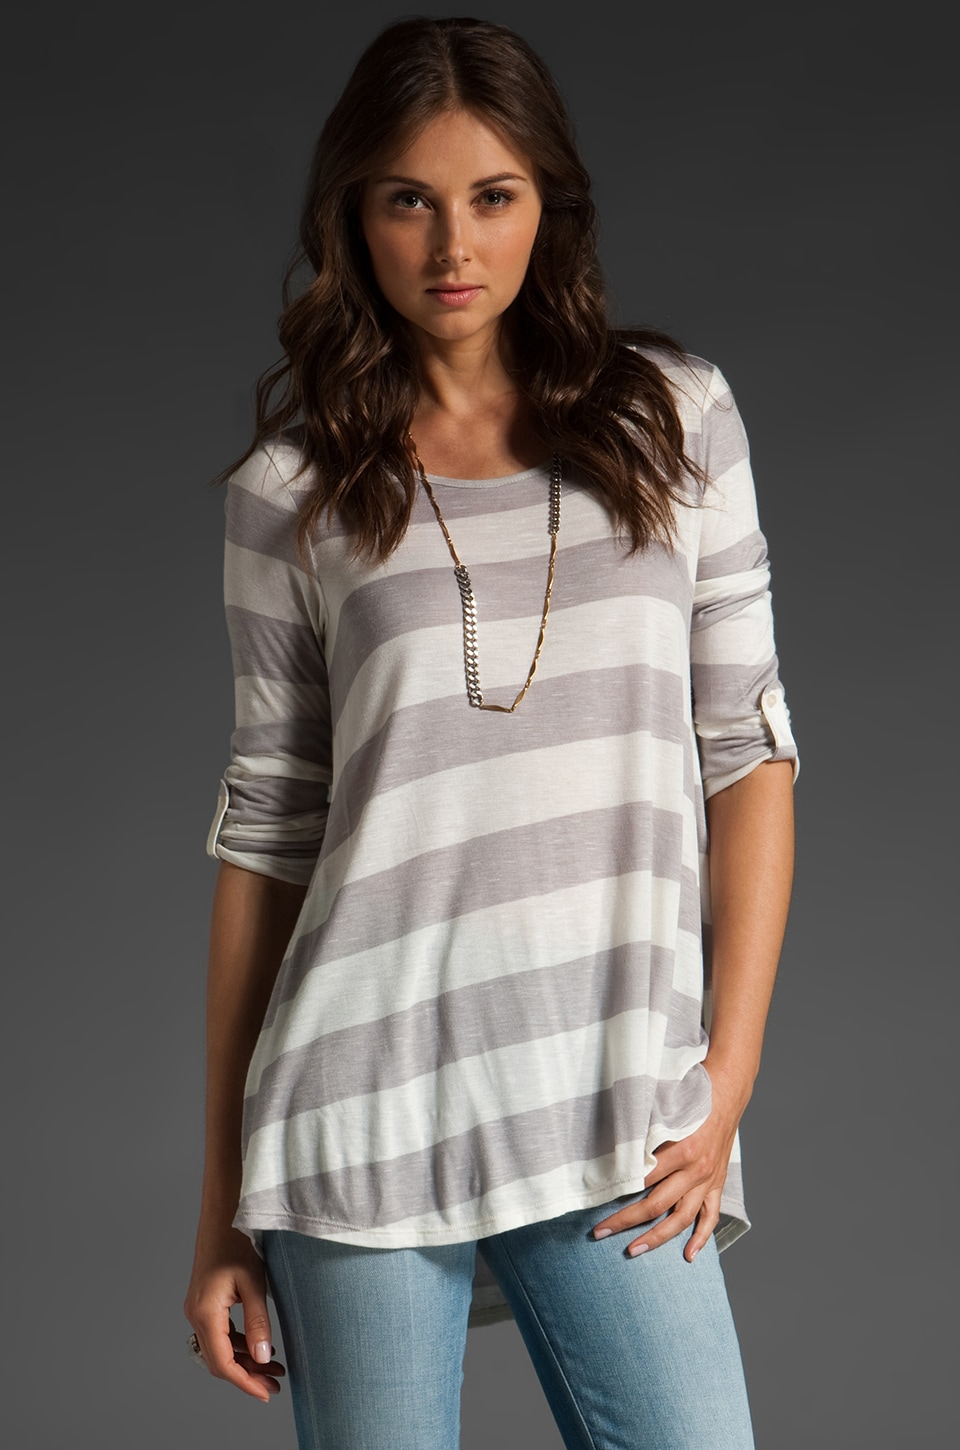 Ella Moss Penelope Stripe Scoop Top in Mist